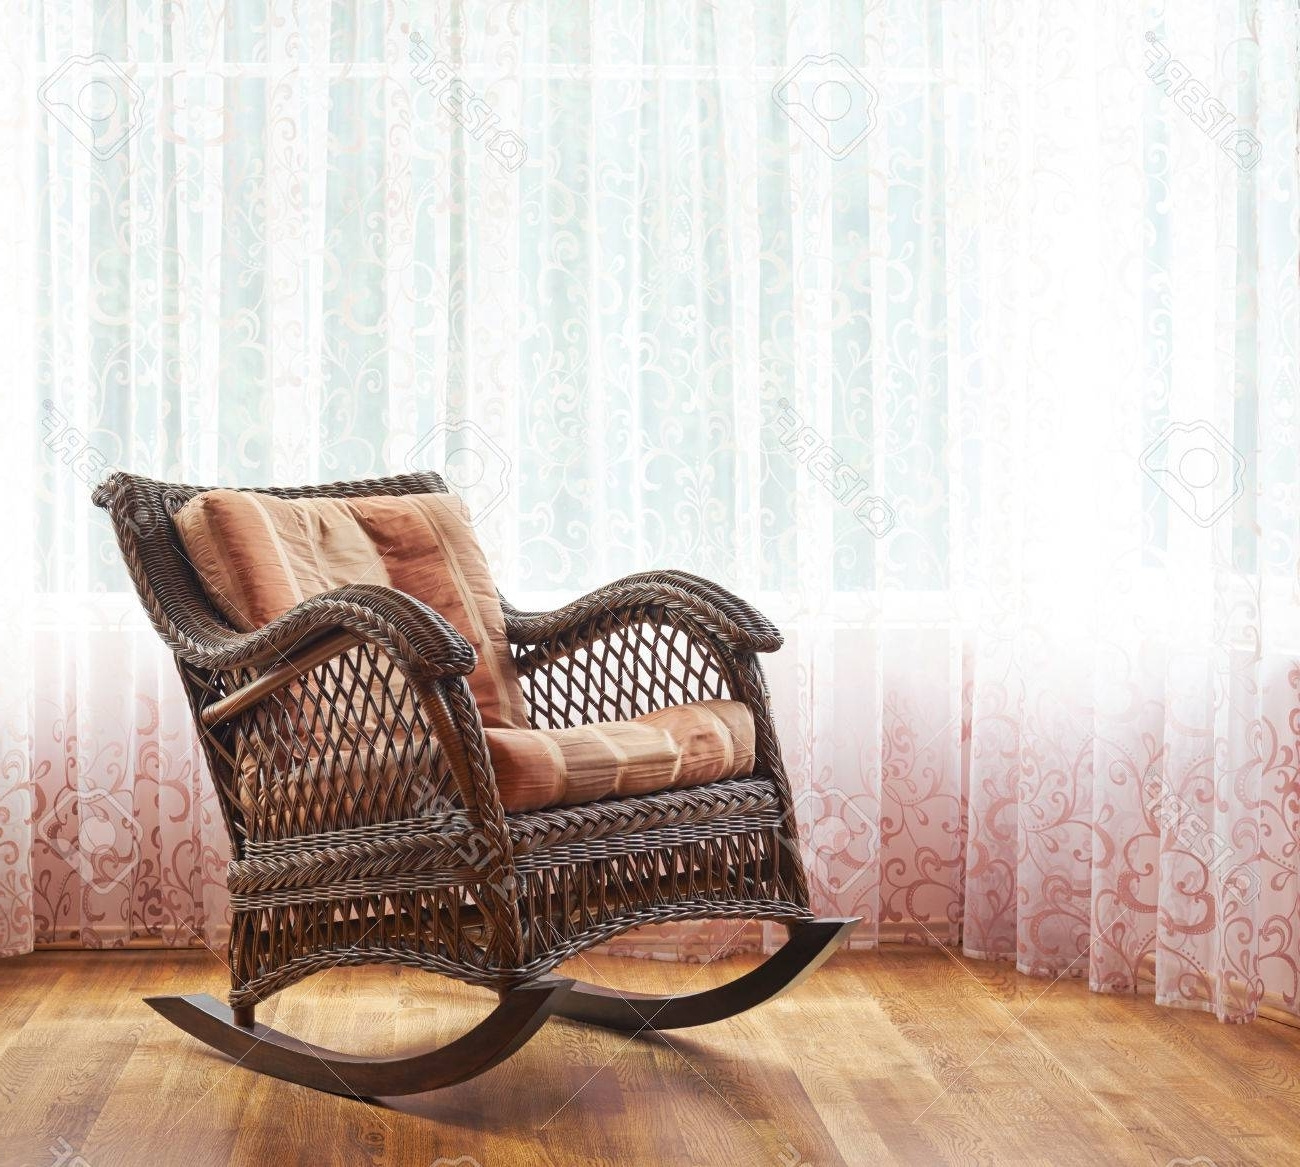 Brown Wicker Rocking Chair Against The Window's Curtains, Indoor Regarding Most Current Indoor Wicker Rocking Chairs (View 5 of 20)